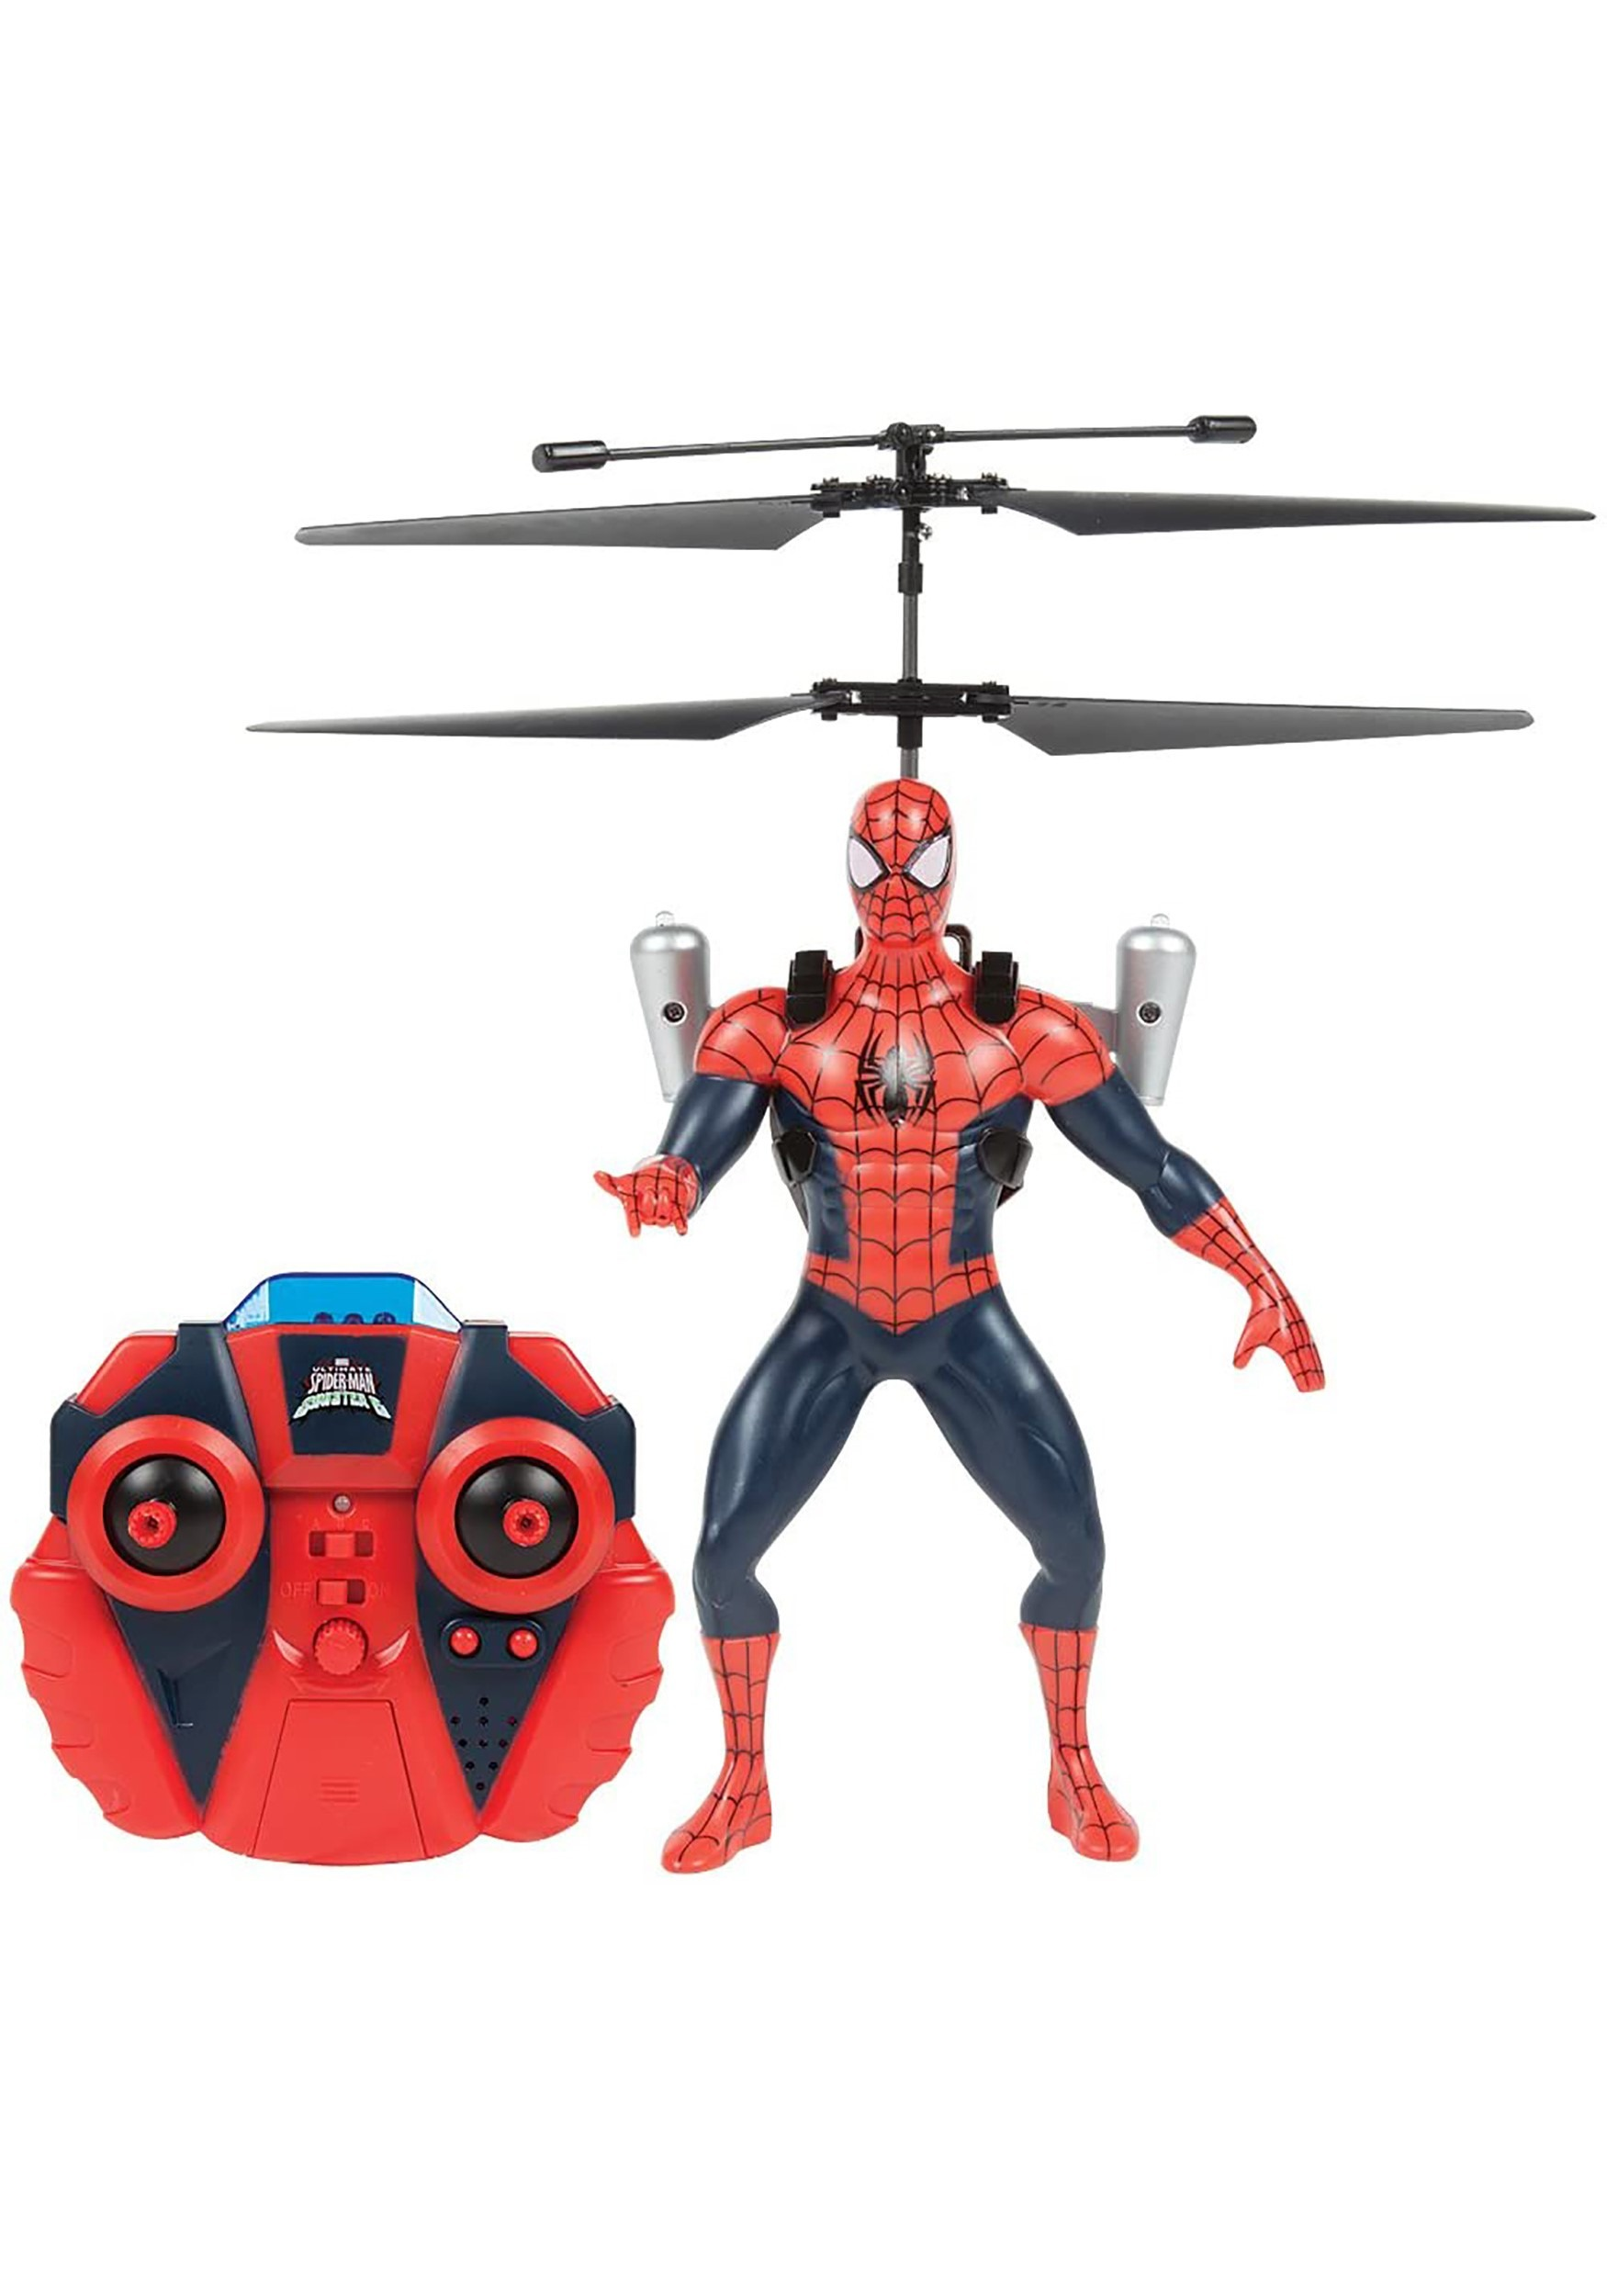 Marvel Flying Spider-Man Figure IR Helicopter